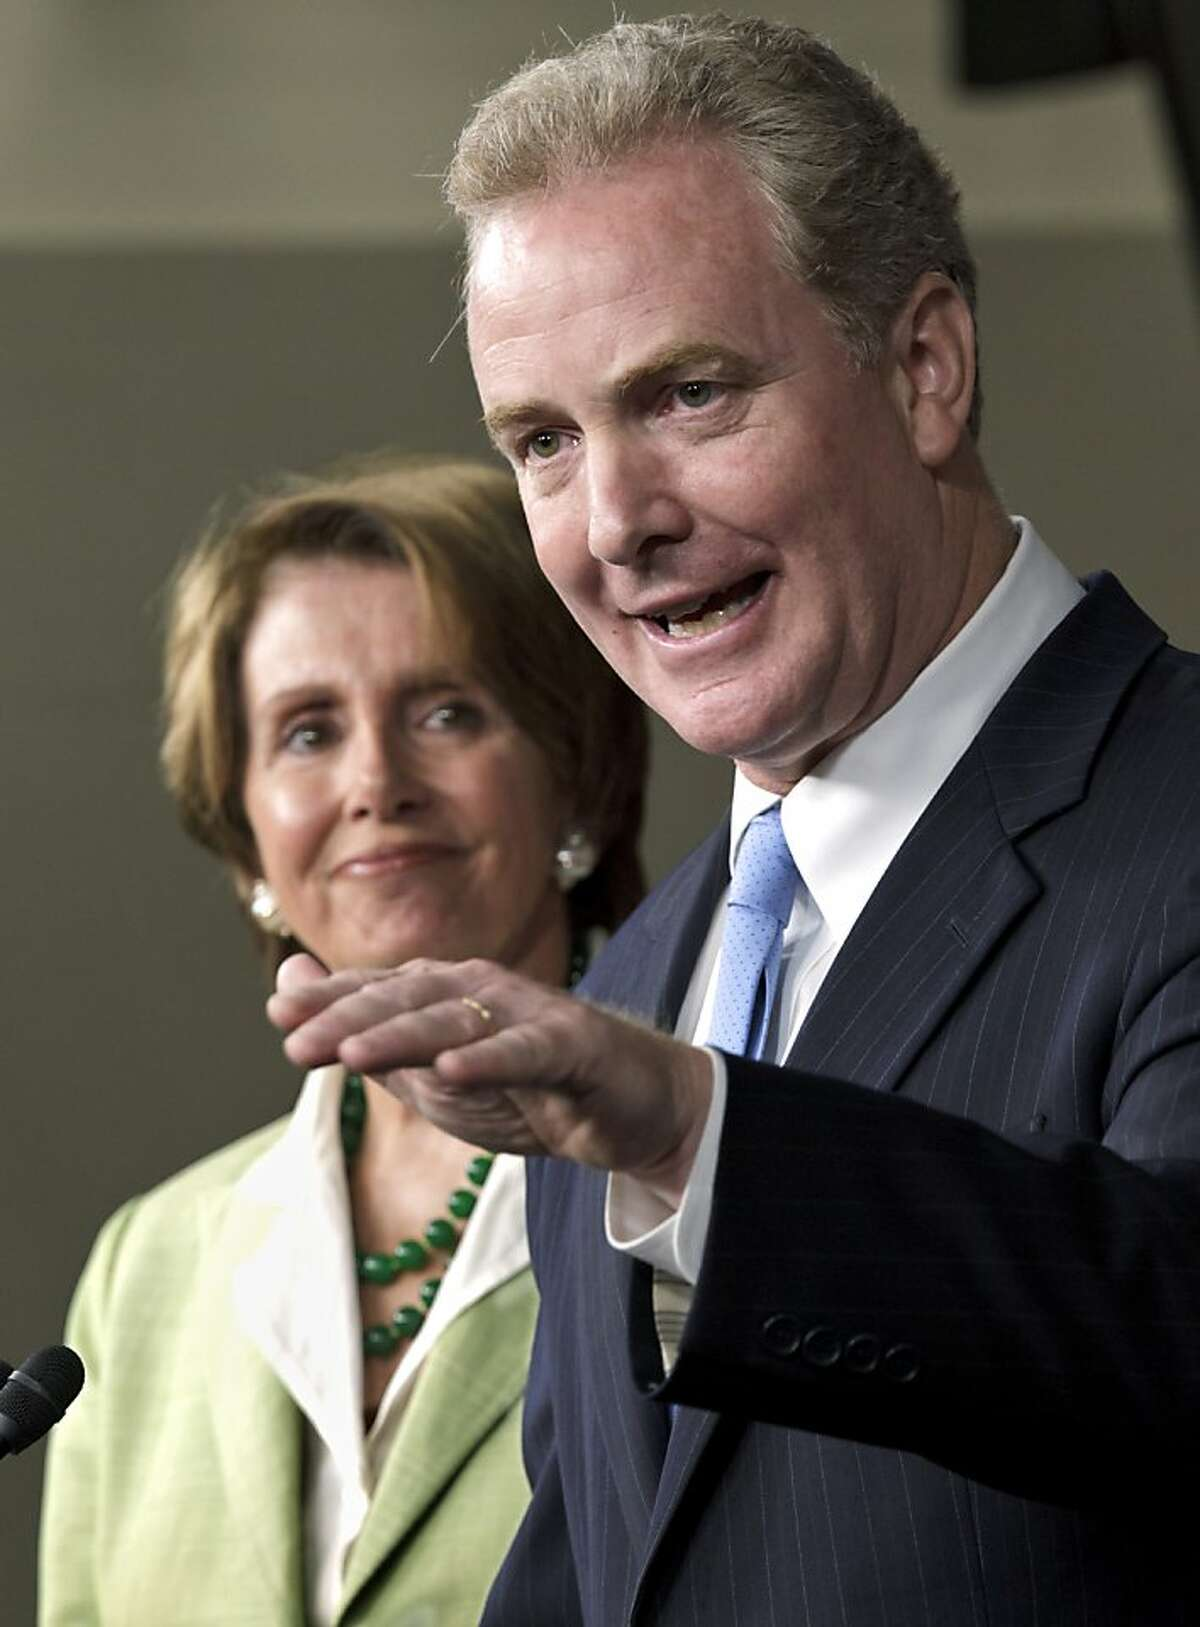 House Minority Leader Nancy Pelosi of Calif. listens a left as Rep. Chris Van Hollen, D-Md. speaks during a news conference on Capitol Hill in Washington, Thursday, July 12, 2012. (AP Photo/J. Scott Applewhite)